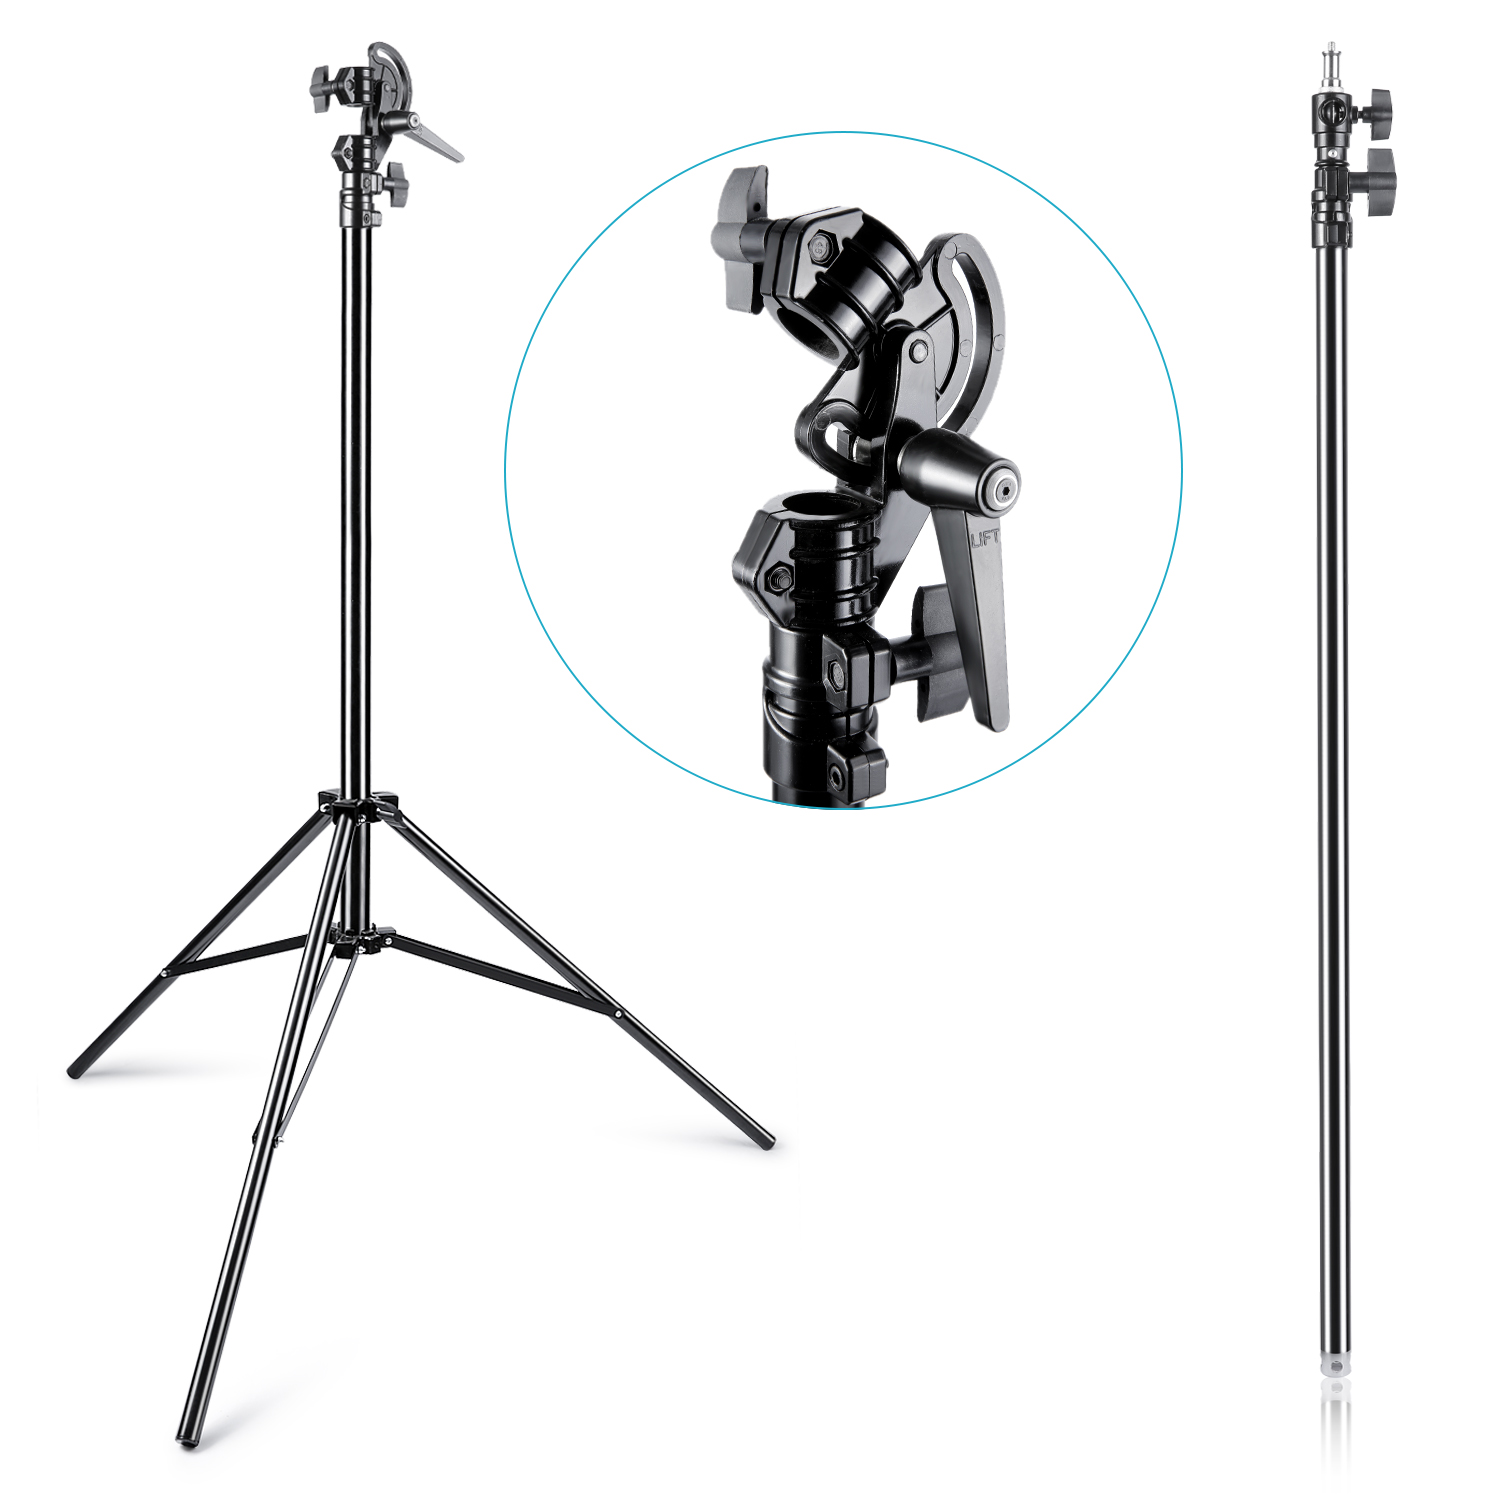 Neewer 13feet Two Way Rotable Adjustable Tripod Boom Light Stand With Sandbag